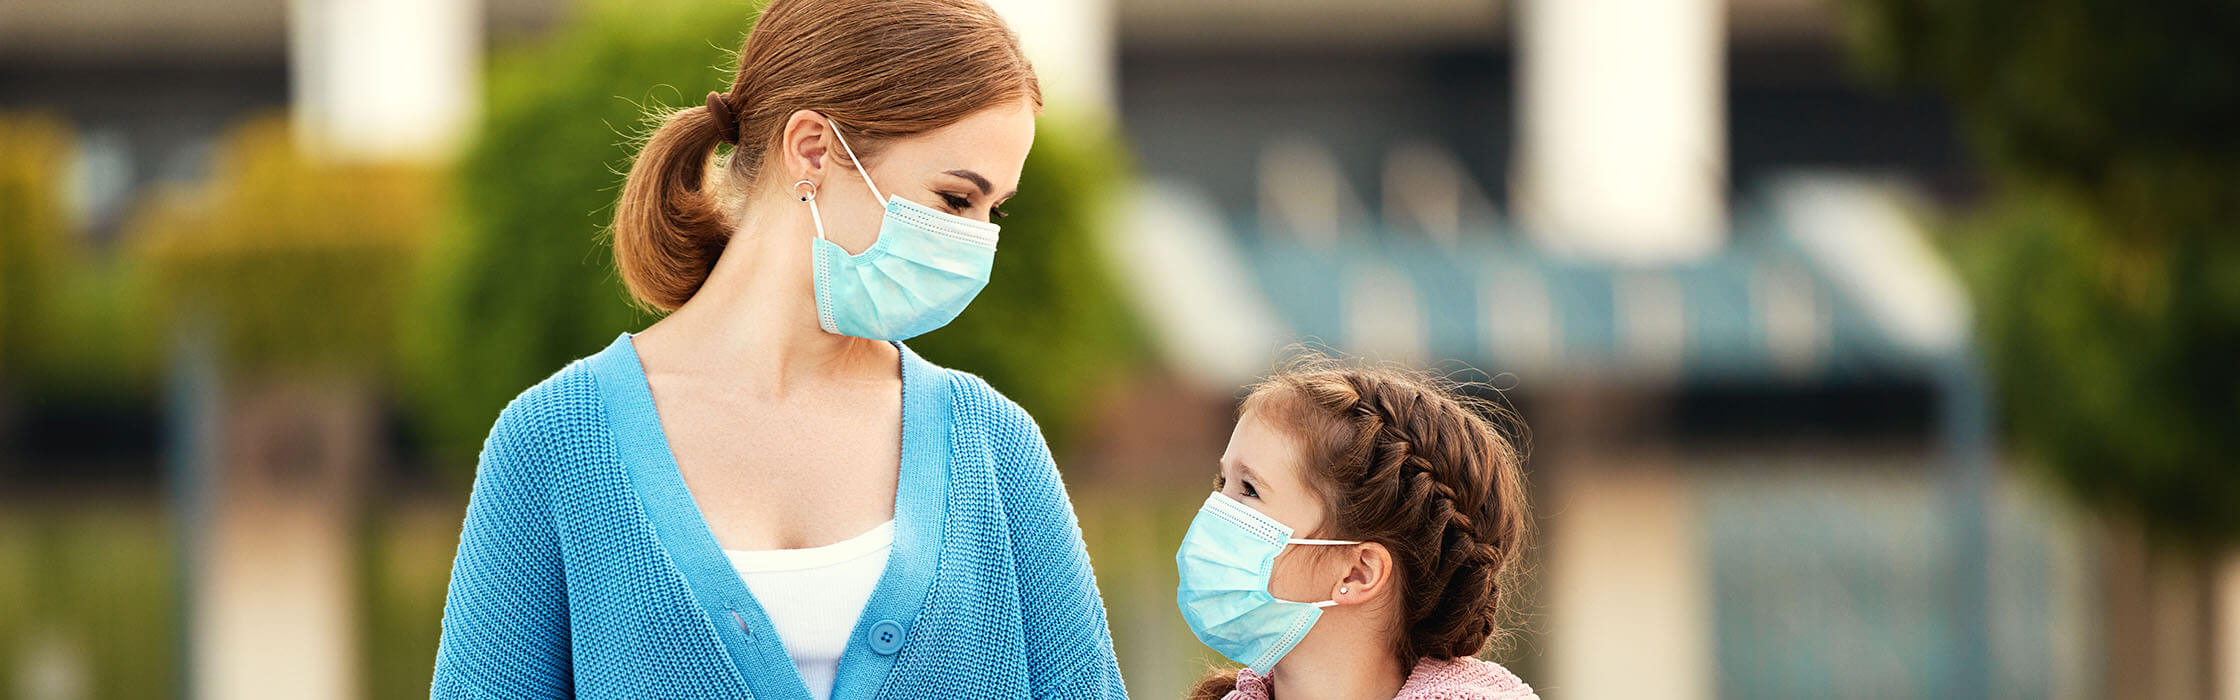 Mother walking daughter to school while wearing face masks